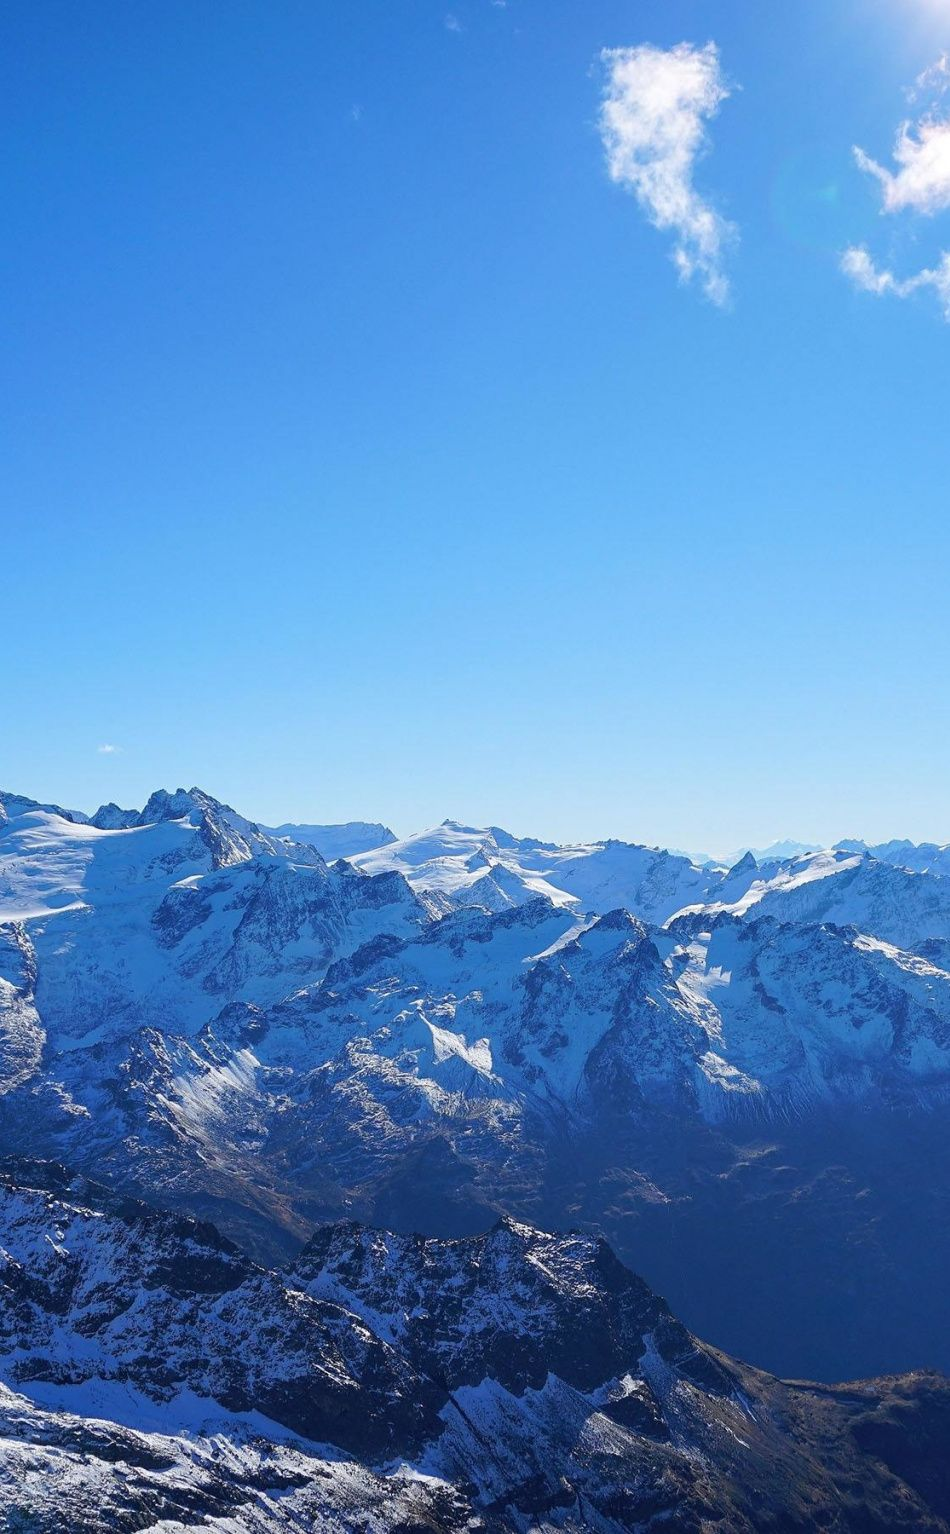 Altitude Sunny Day Blue Sky Mountains Nature Wallpaper Blue Sky Wallpaper Nature Wallpaper Sky Landscape